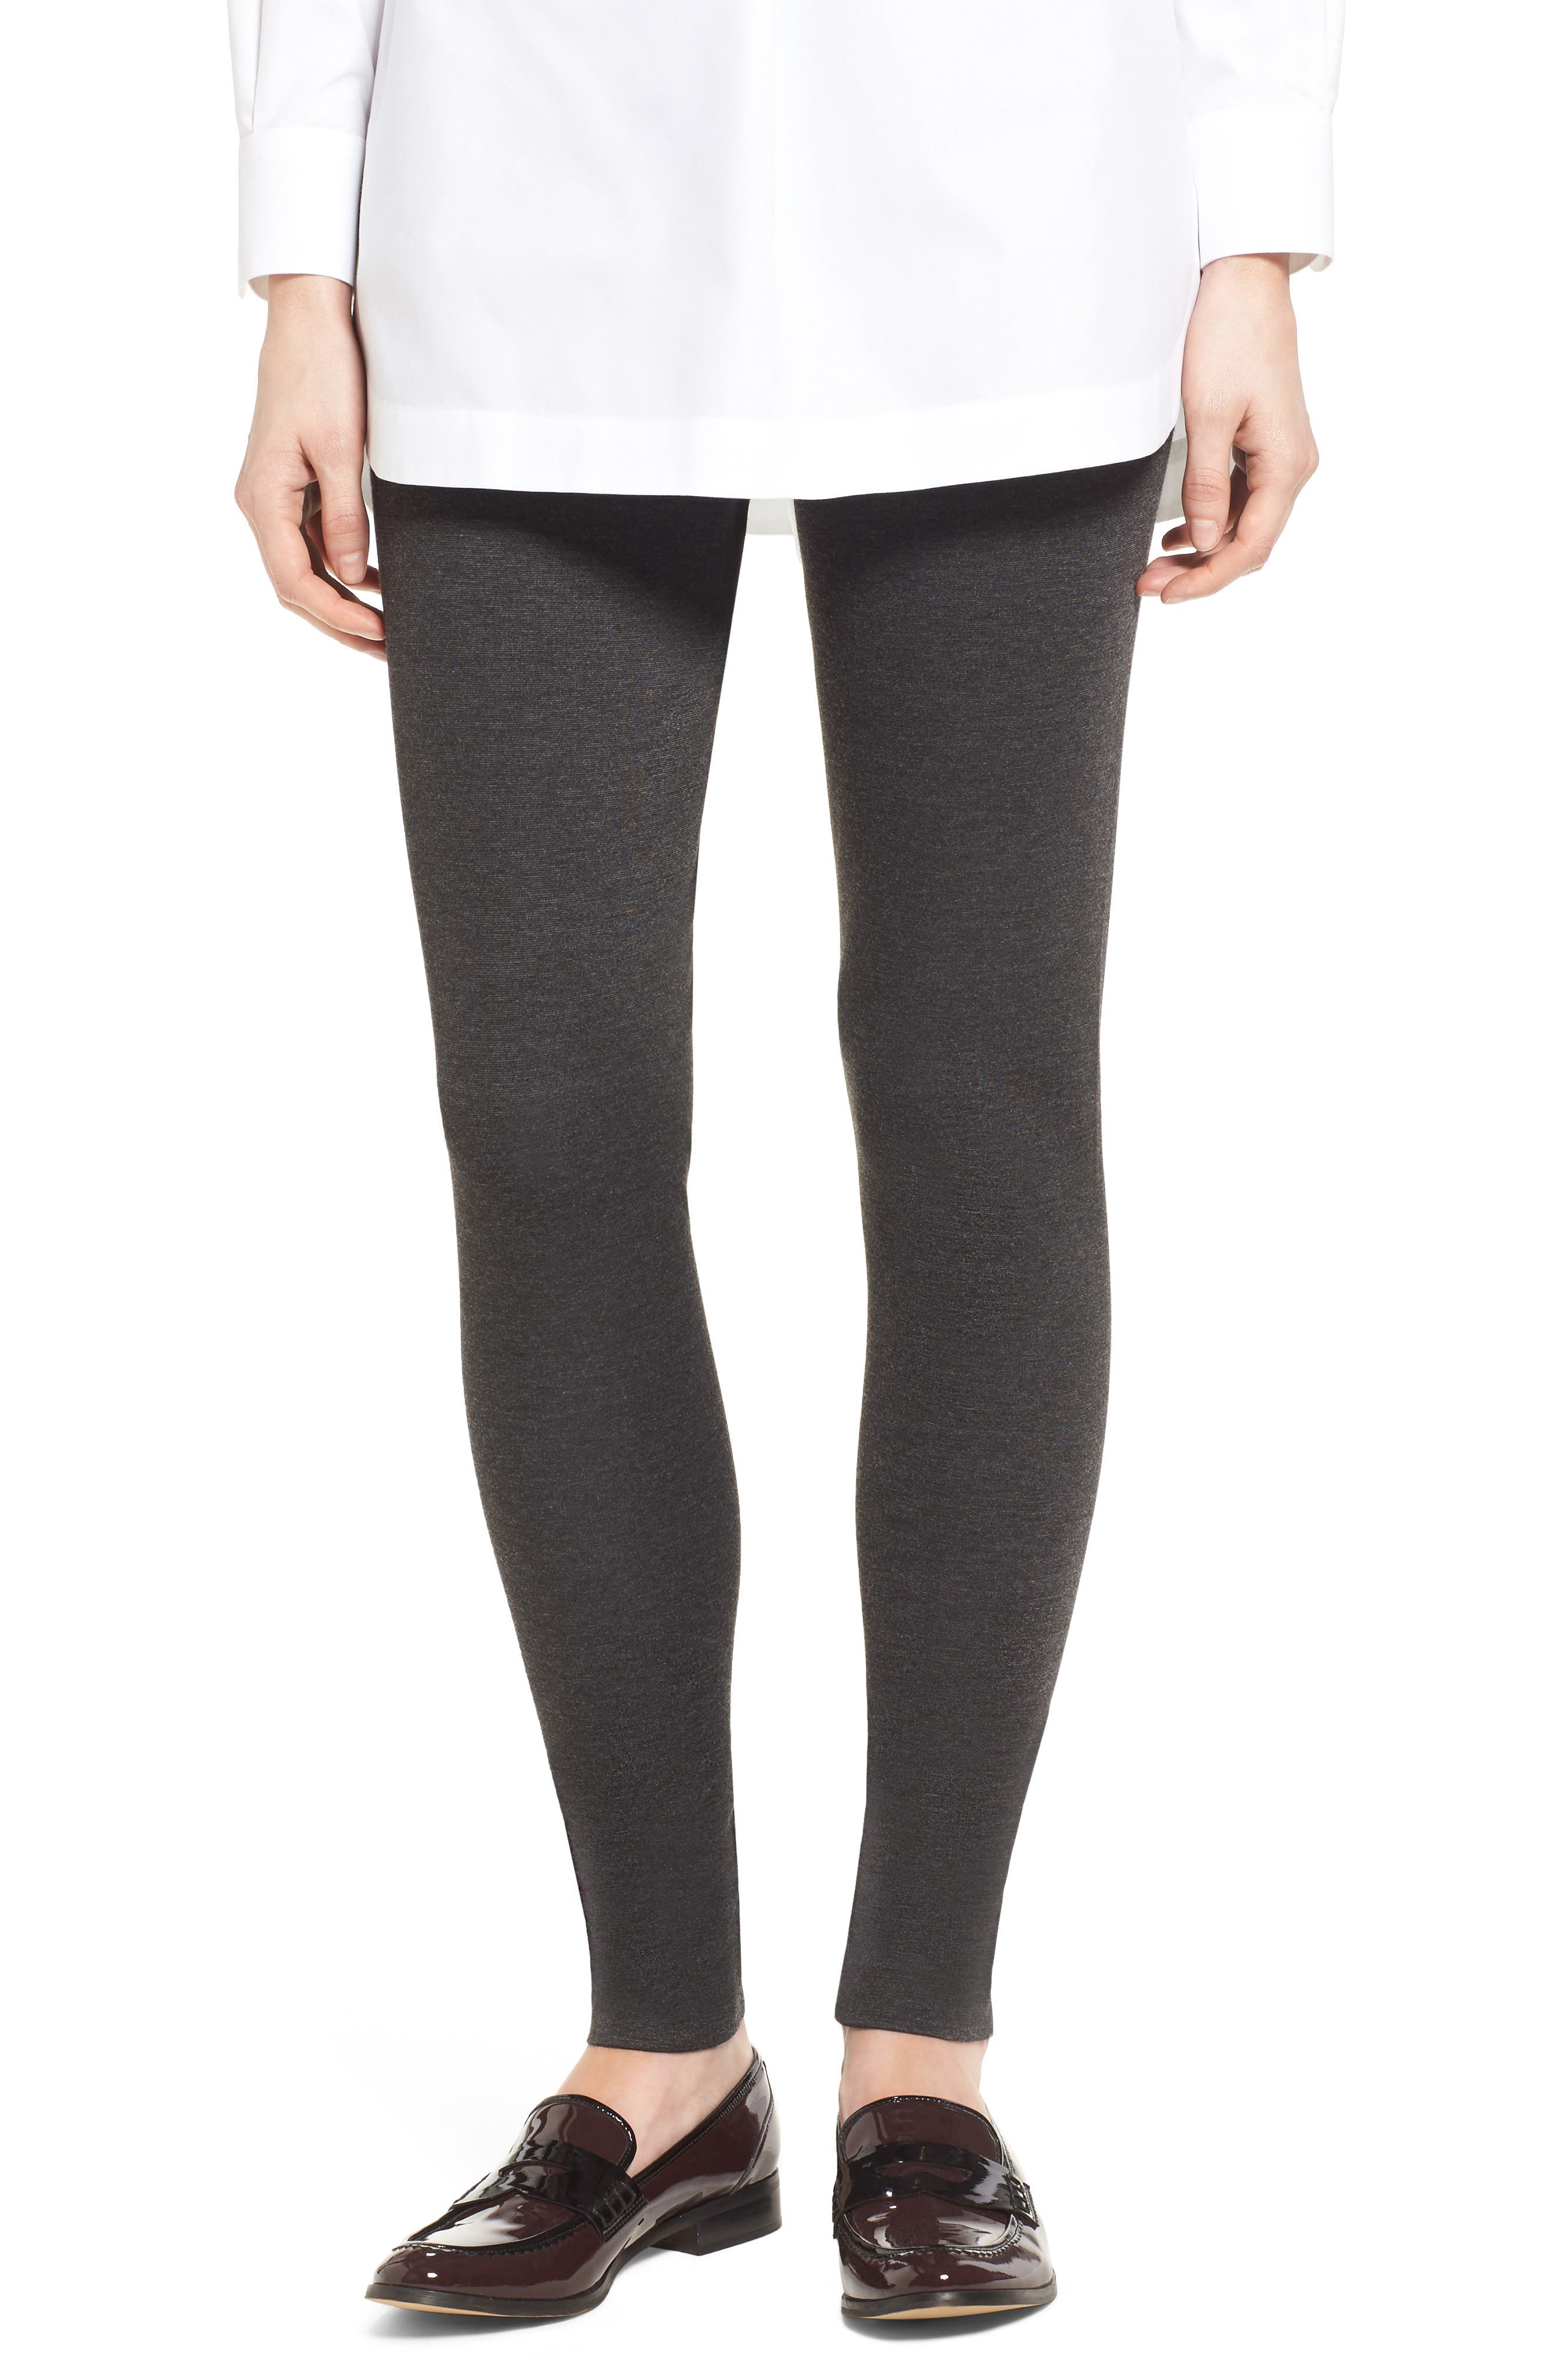 VINCE CAMUTO, Two by Vince Camuto Seamed Back Leggings, Main thumbnail 1, color, DARK HEATHER GREY